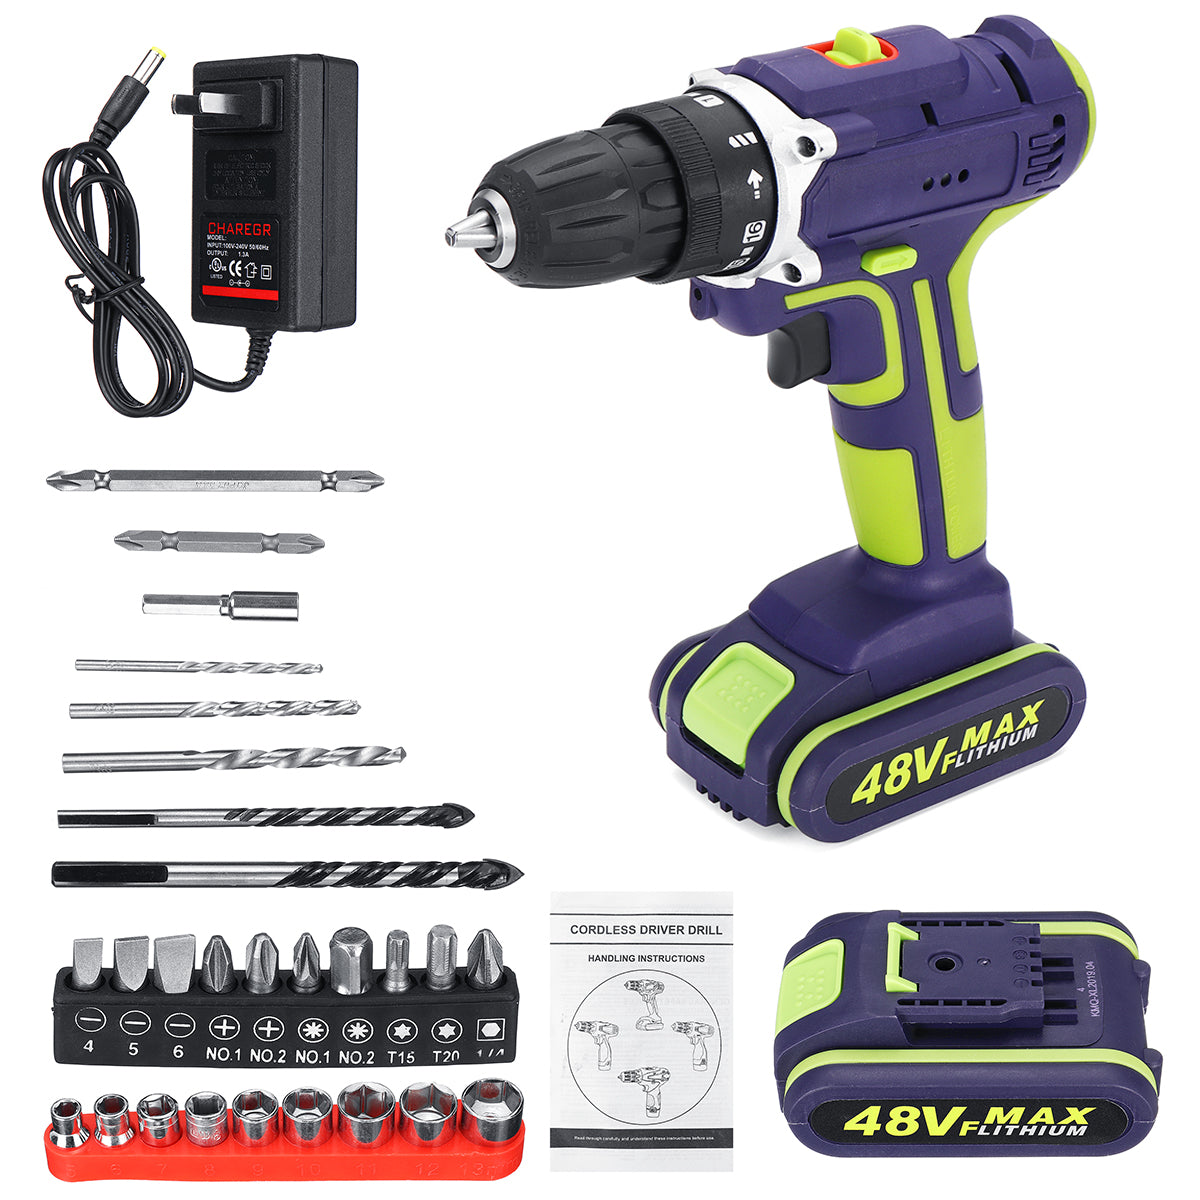 3 In 1 Cordless Dual Speed Hammer Drill with Two 48V Batteries